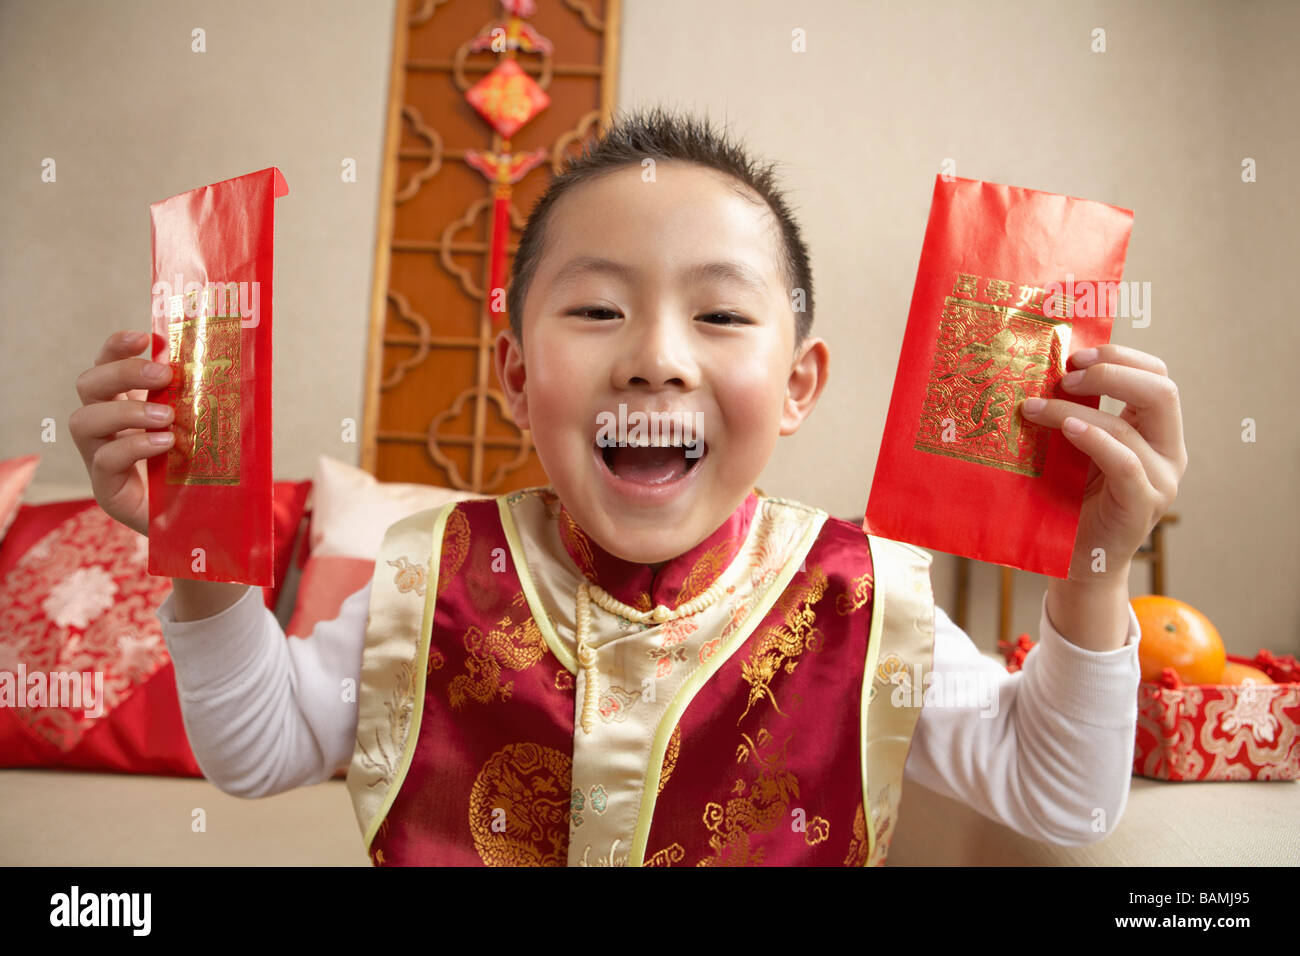 Young Boy In Traditional Clothing Holding Up Presents And Looking Happy - Stock Image